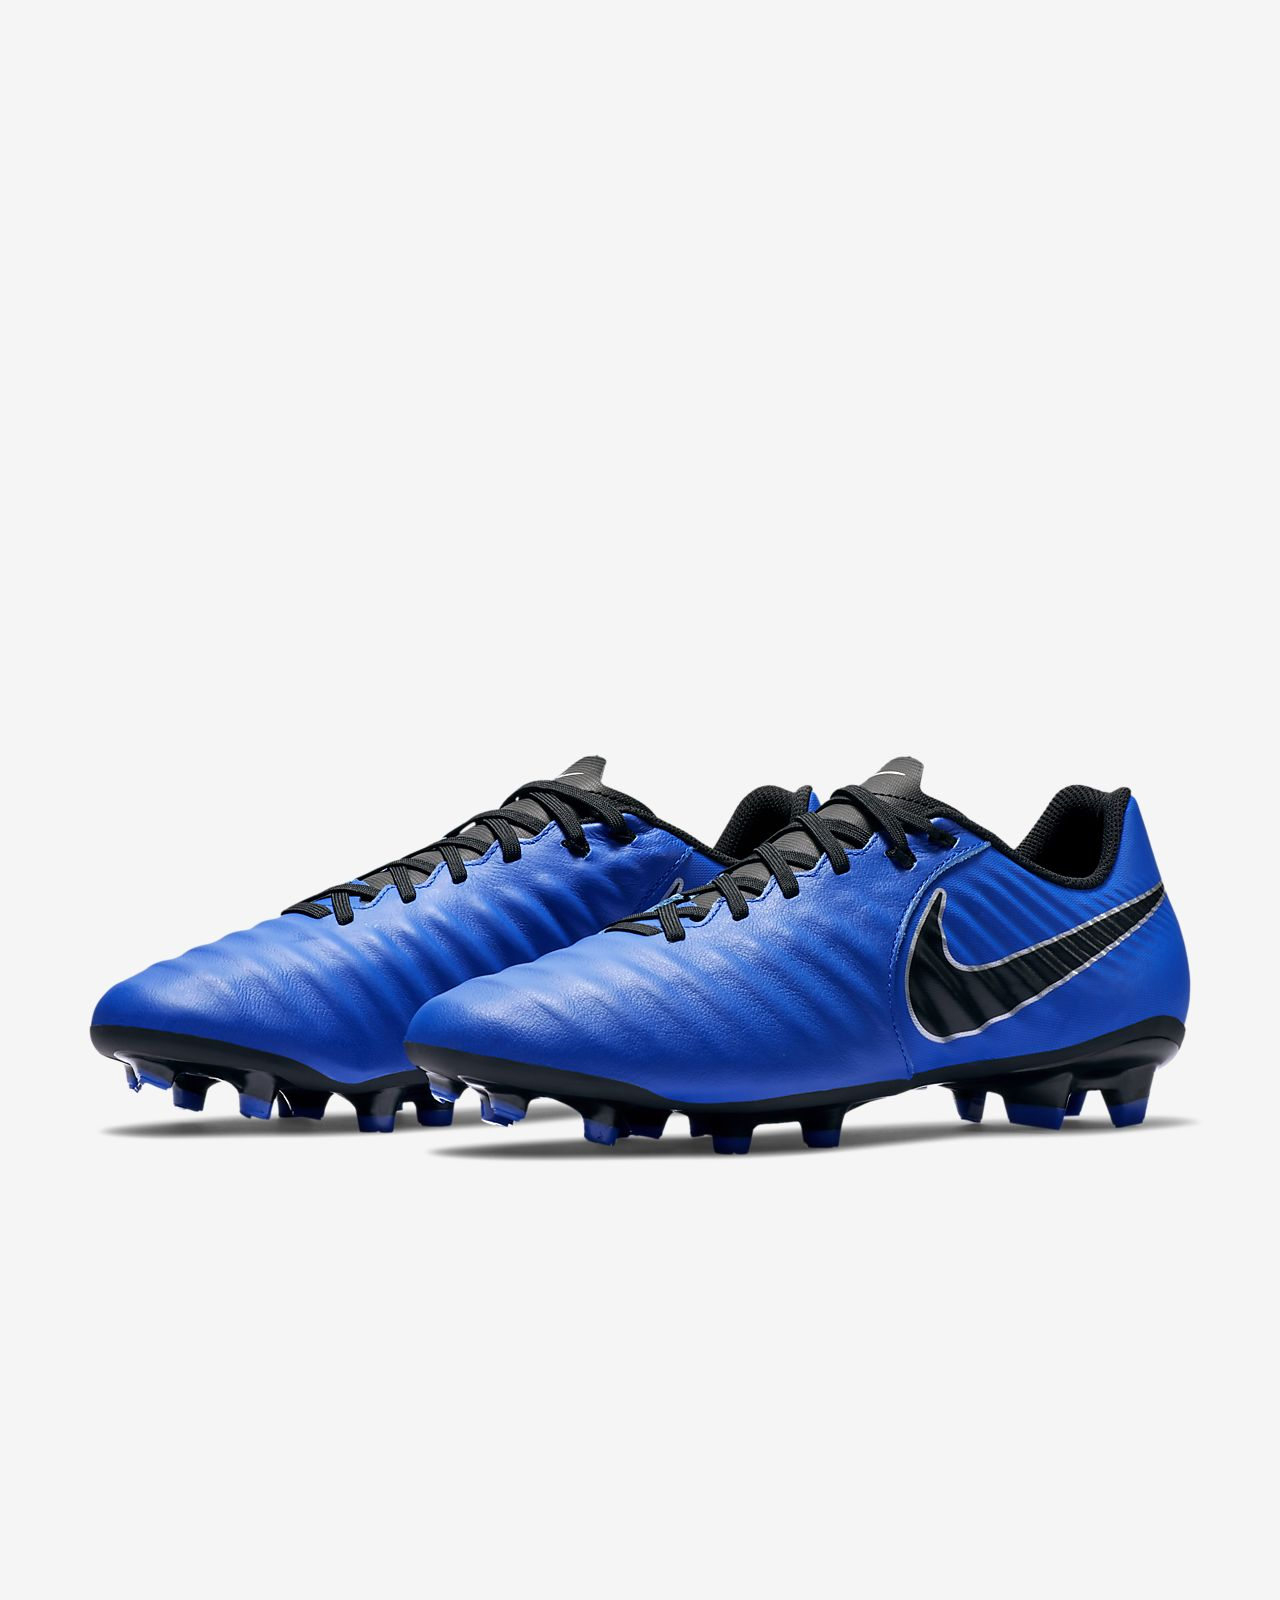 new arrival 5d0c7 fec0d ... Nike Tiempo Legend VII Academy Firm-Ground Football Boot